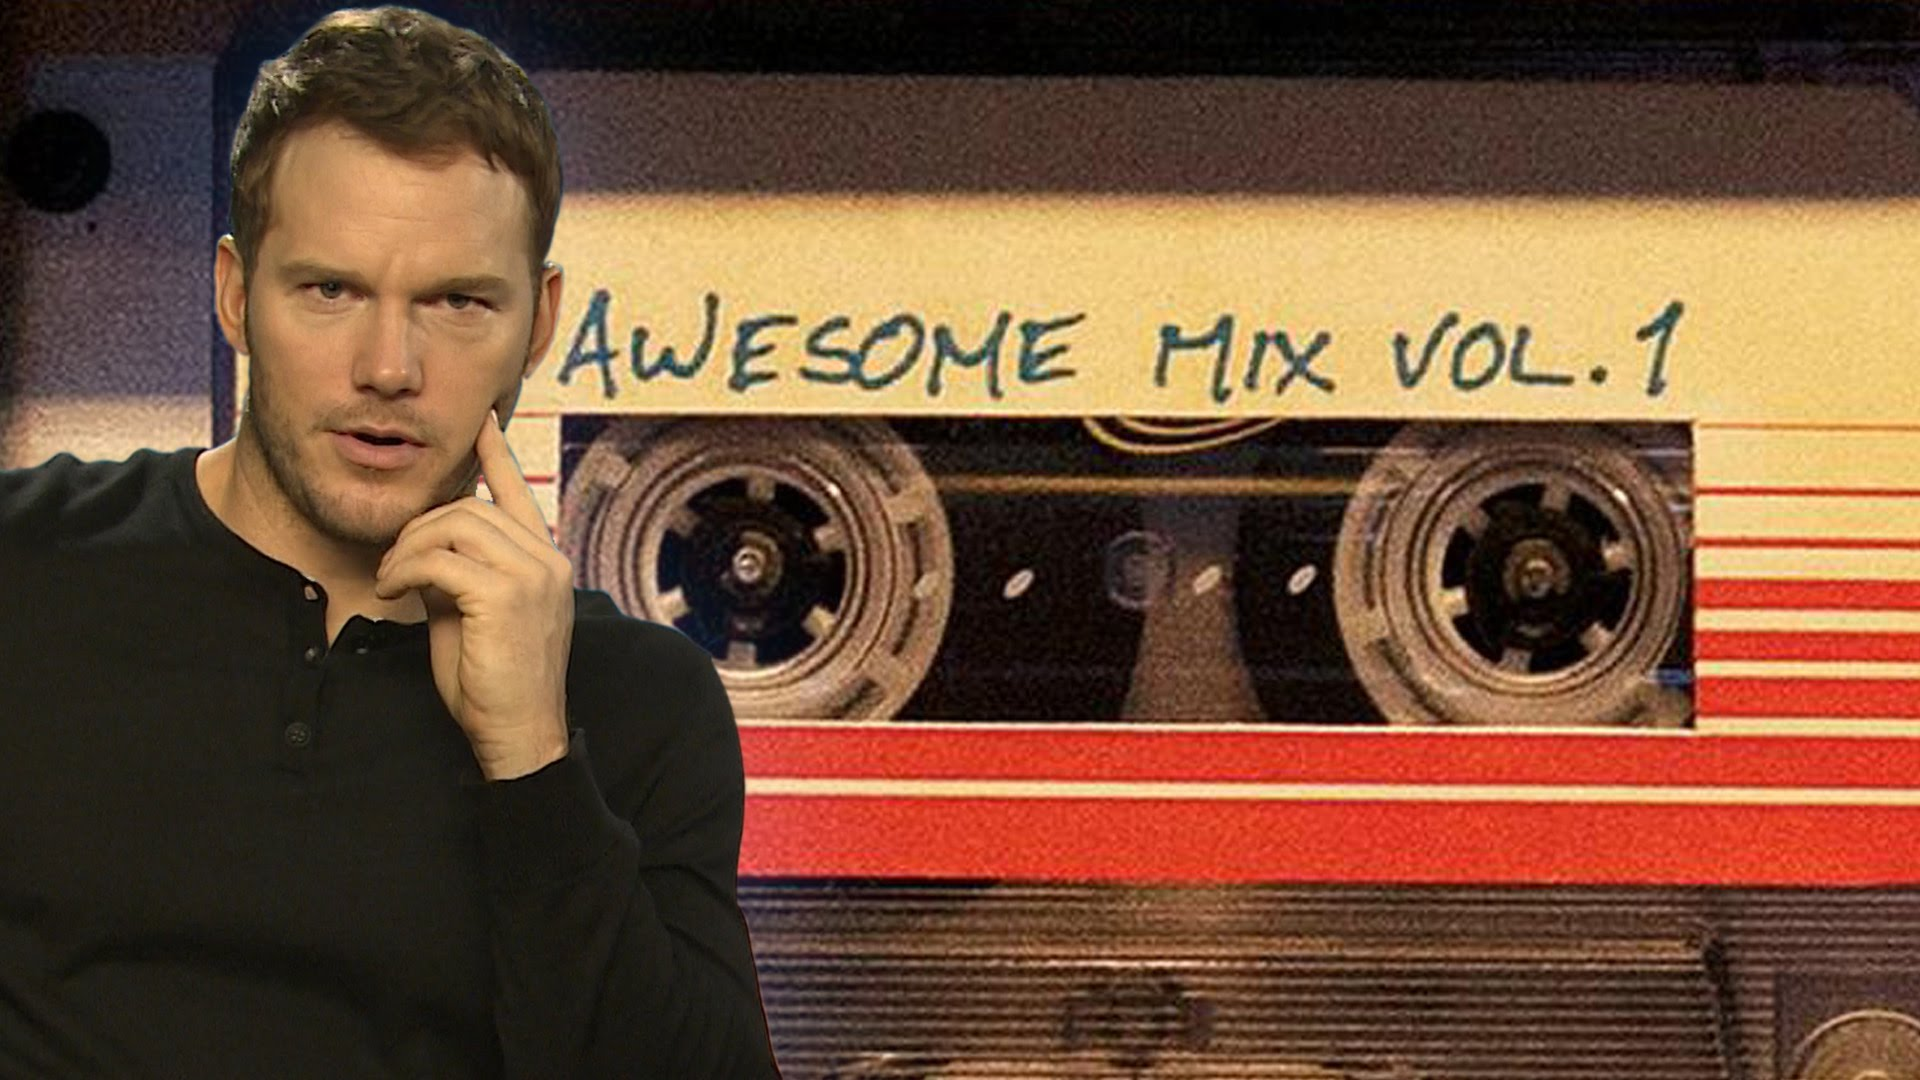 awesome mix vol 2 original motion picture soundtrack by various artists on itunes 3